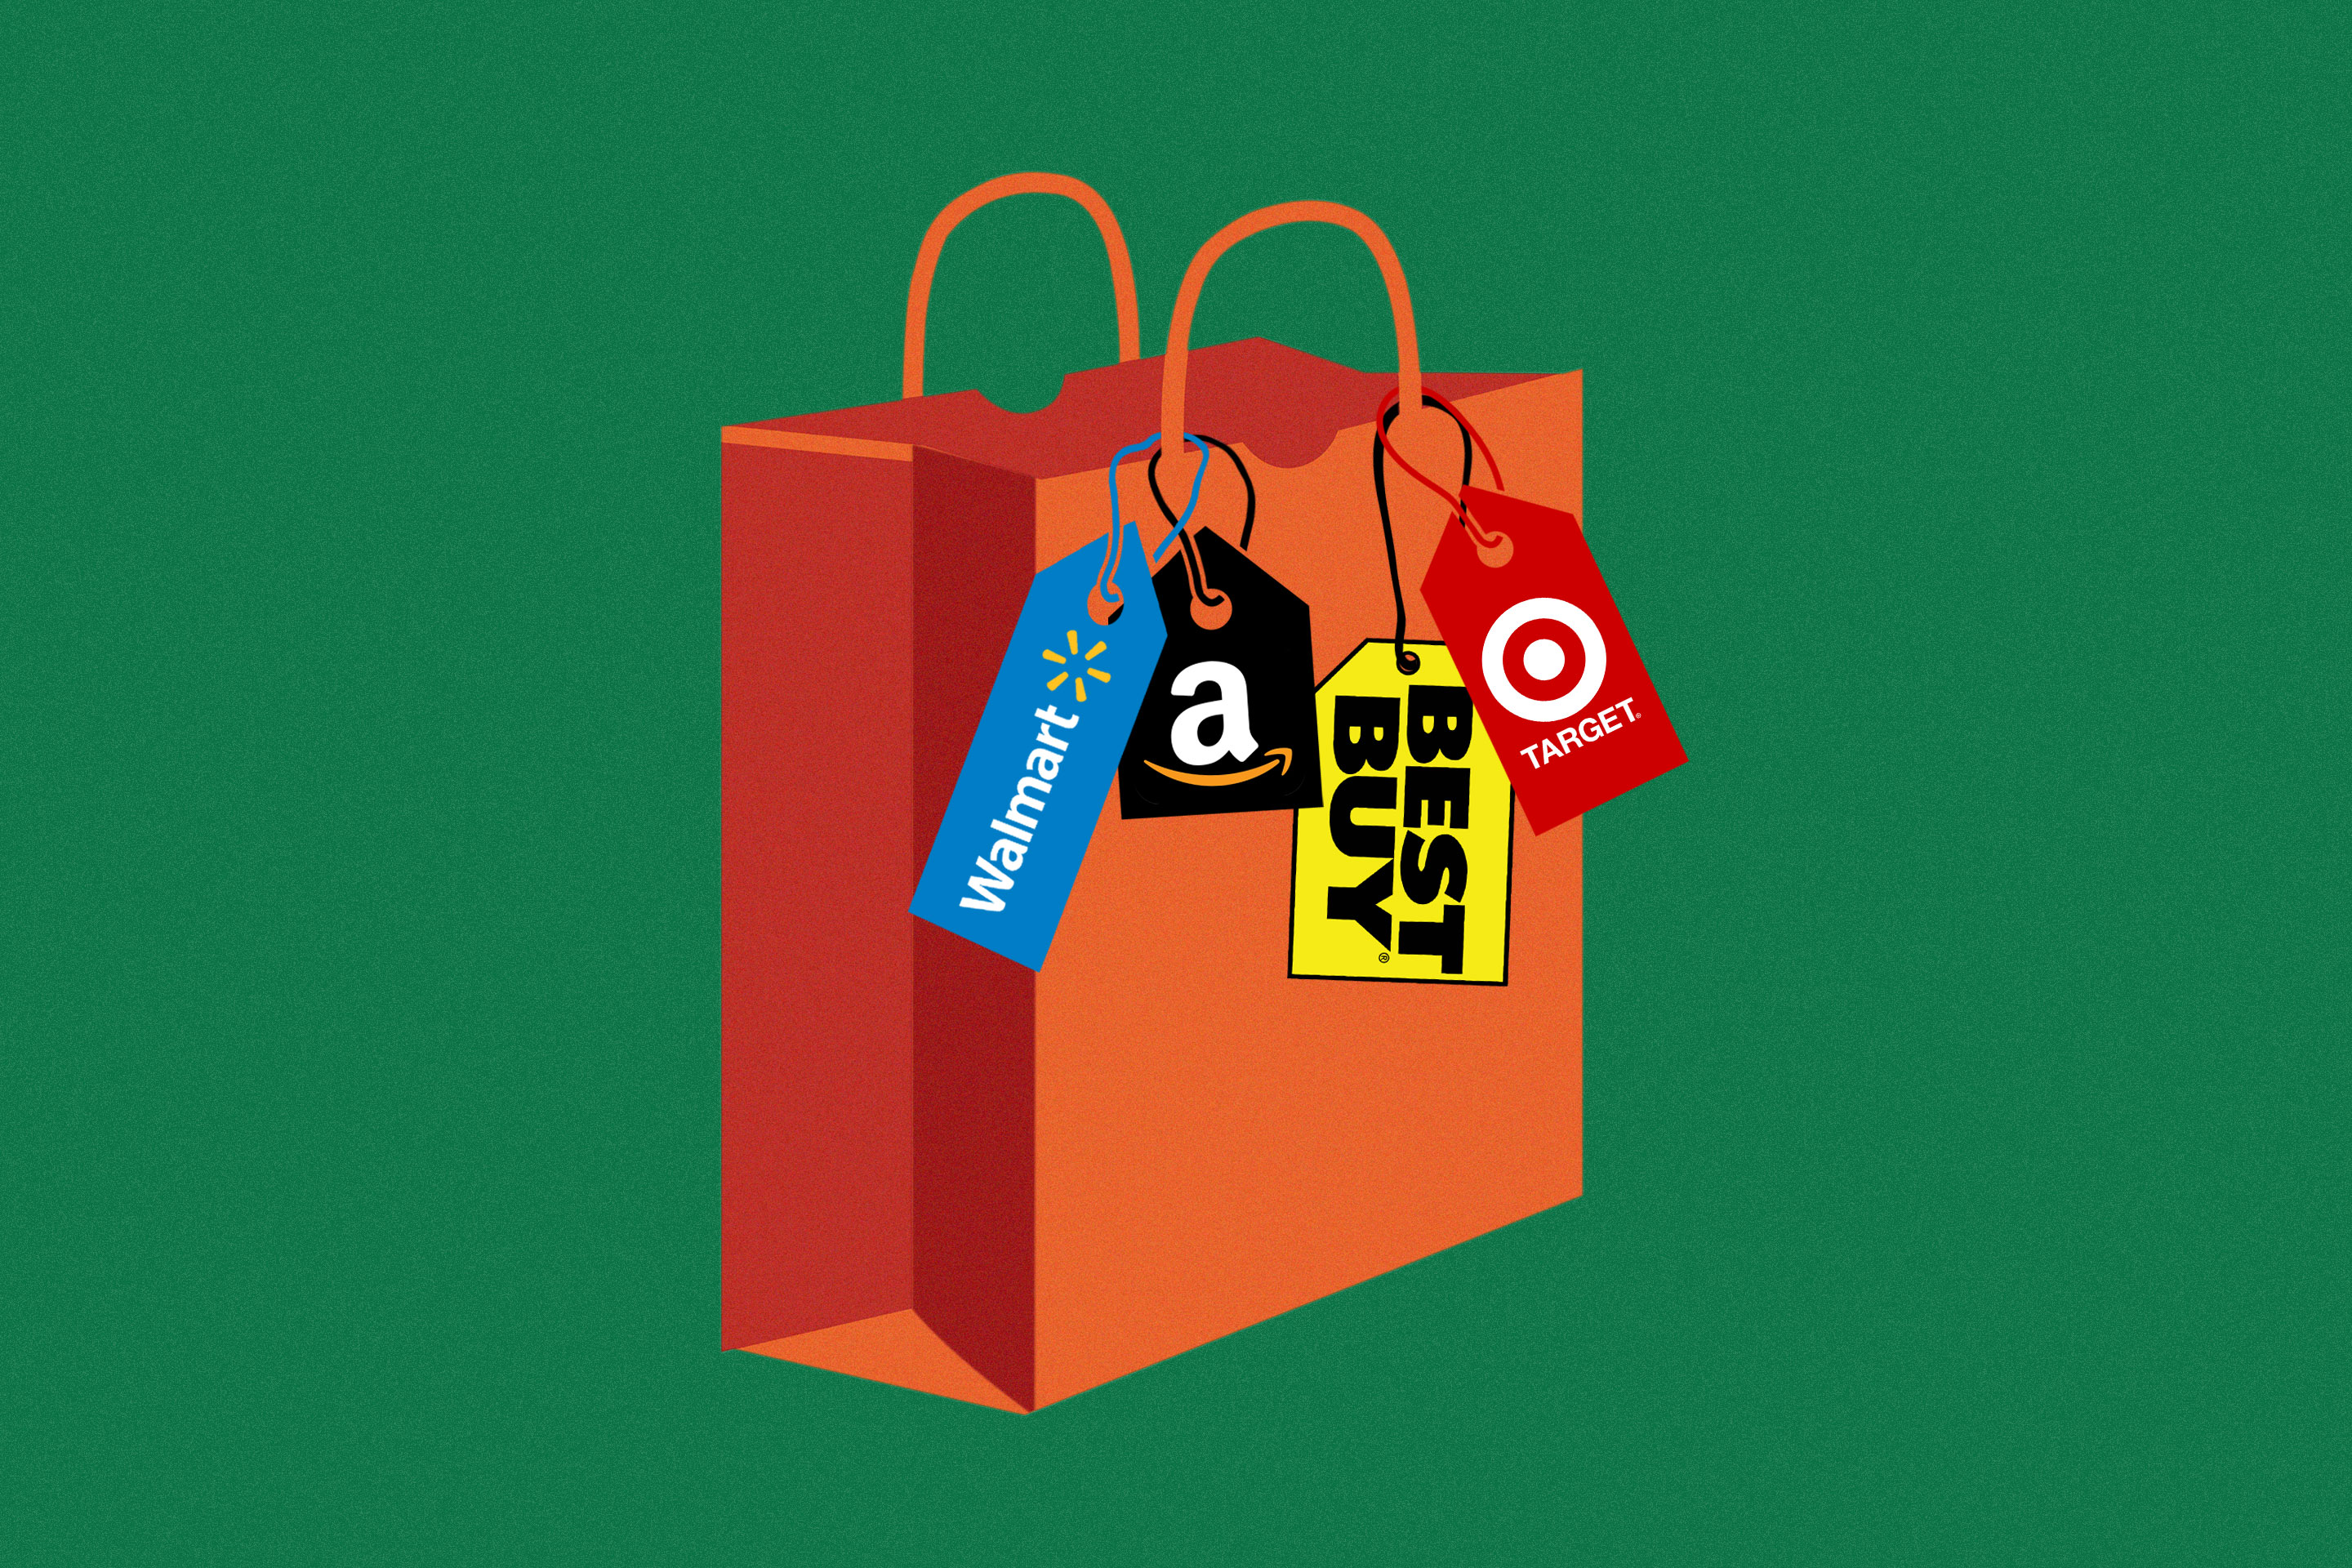 Black Friday 2020: How to Get the Best Deals, Avoid Overspending and Score Cash Back